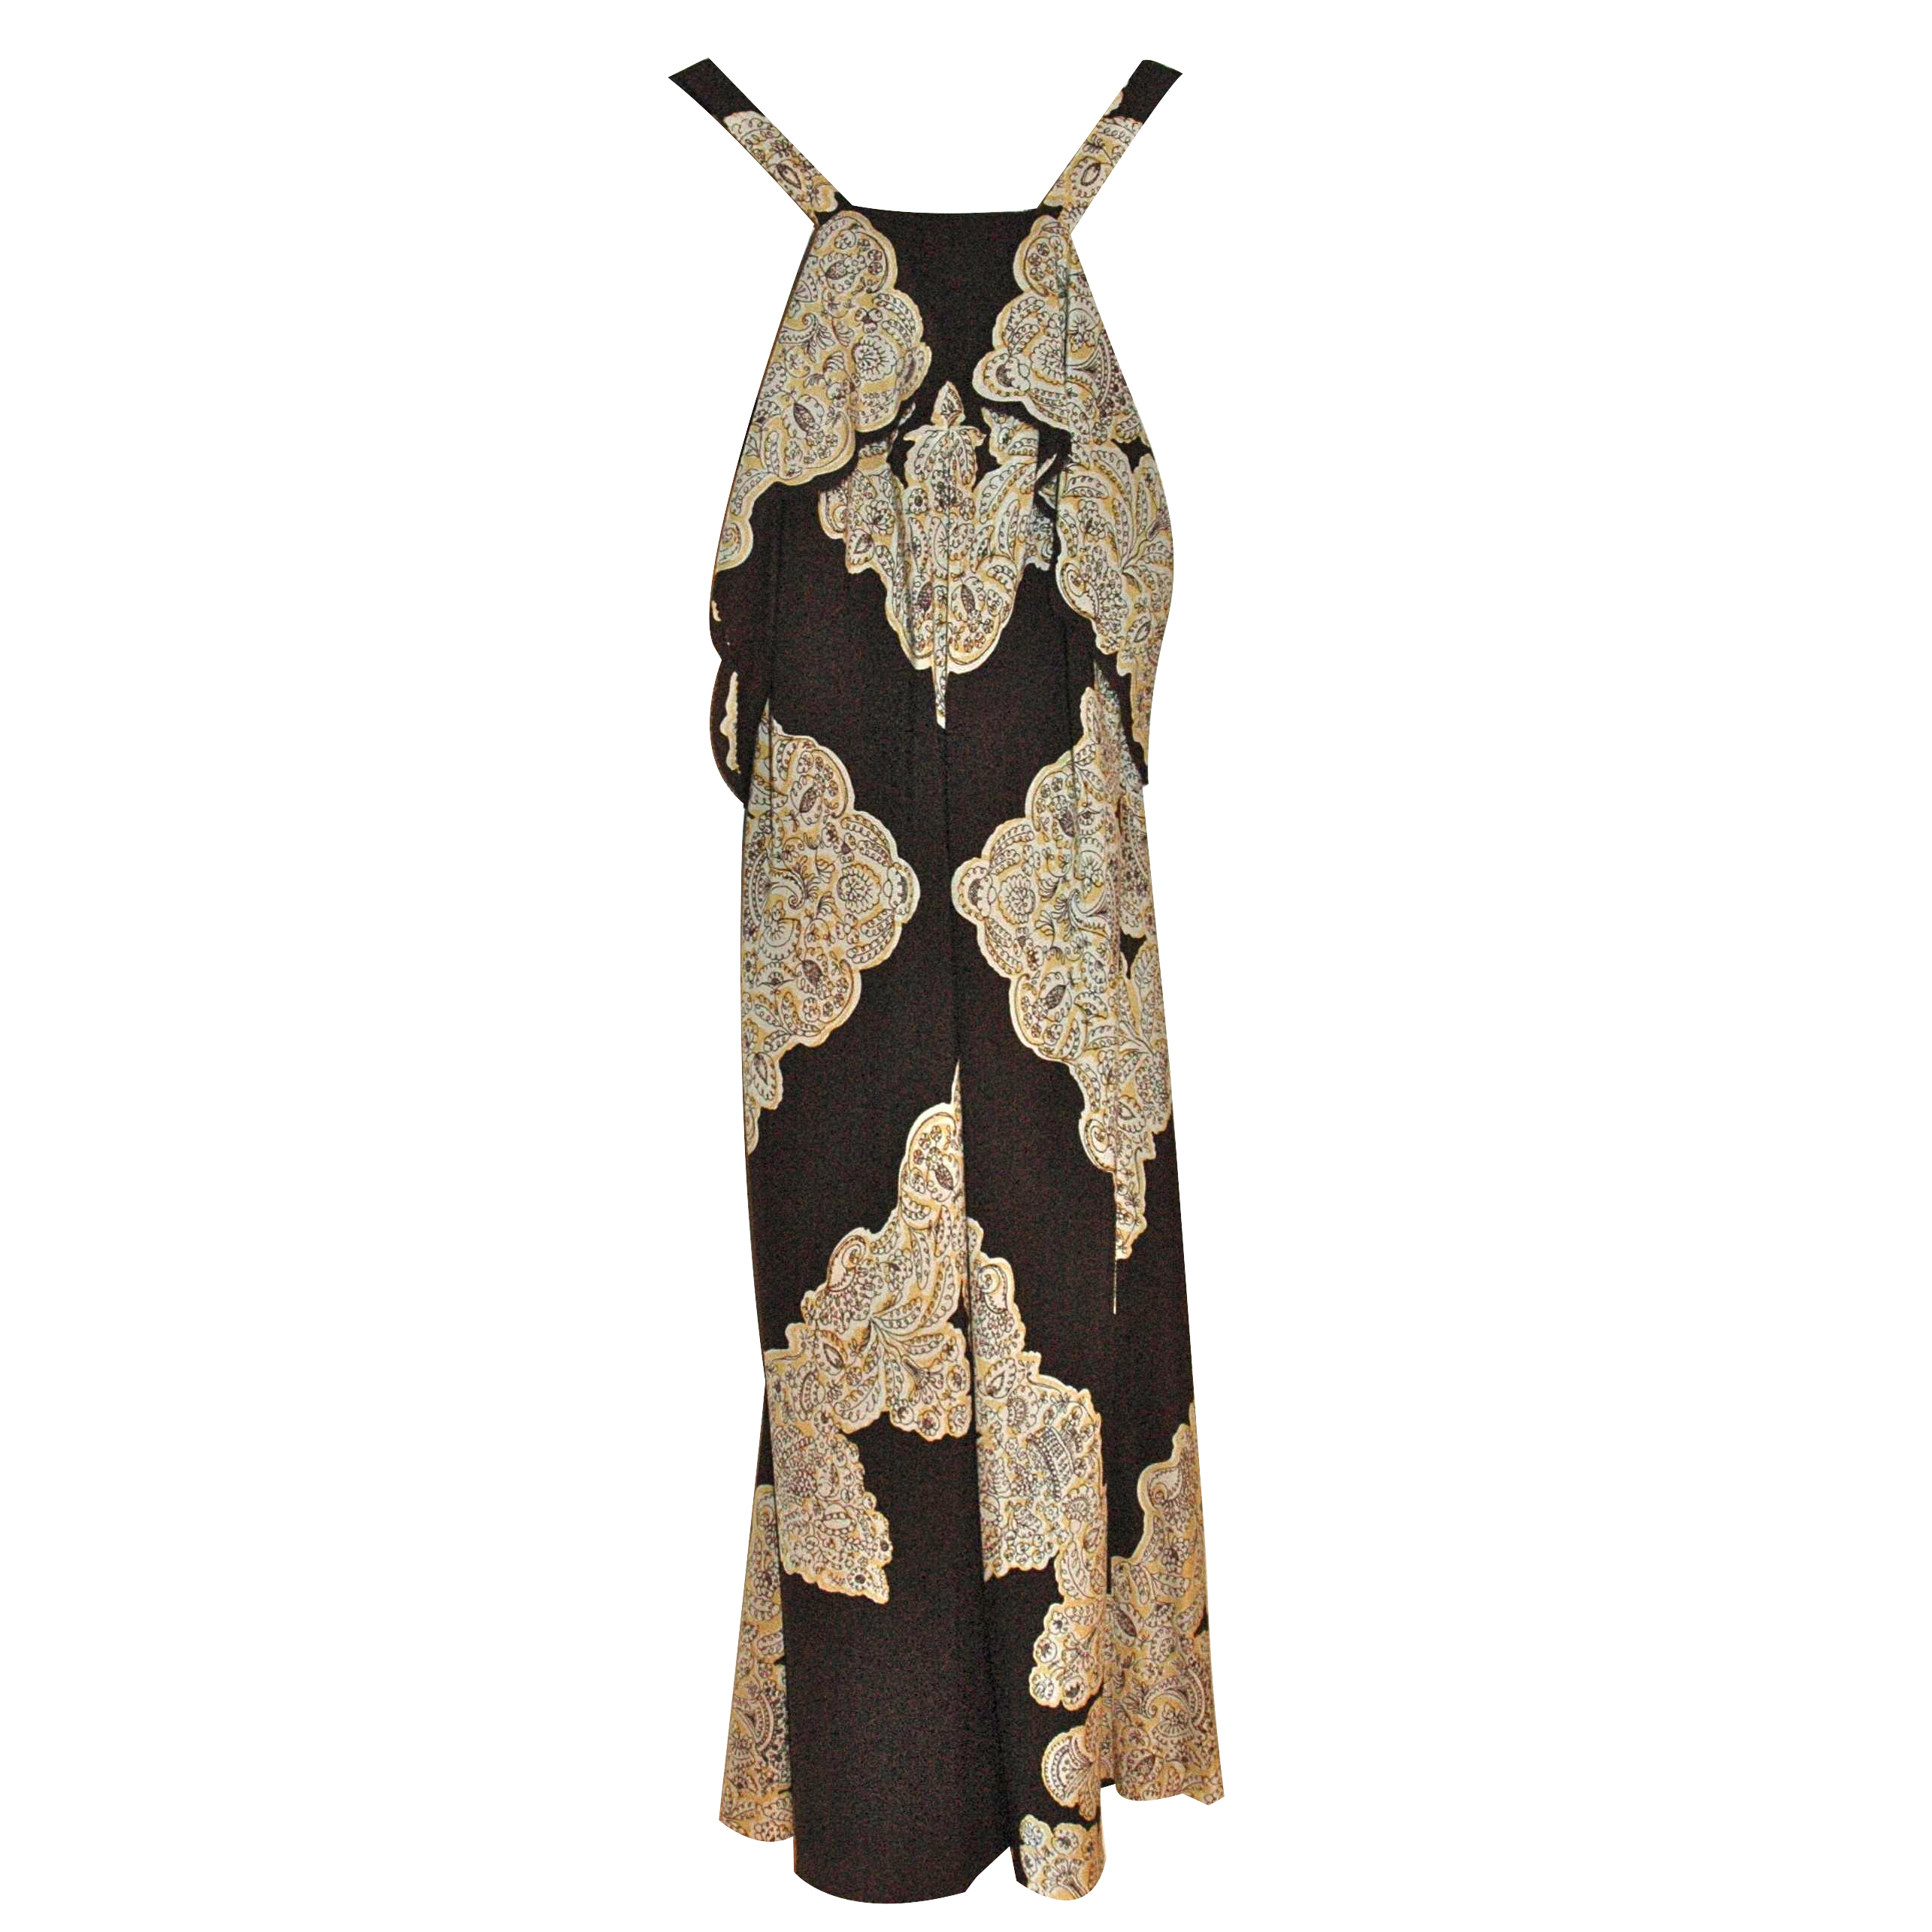 Cesare Fabri silk dress